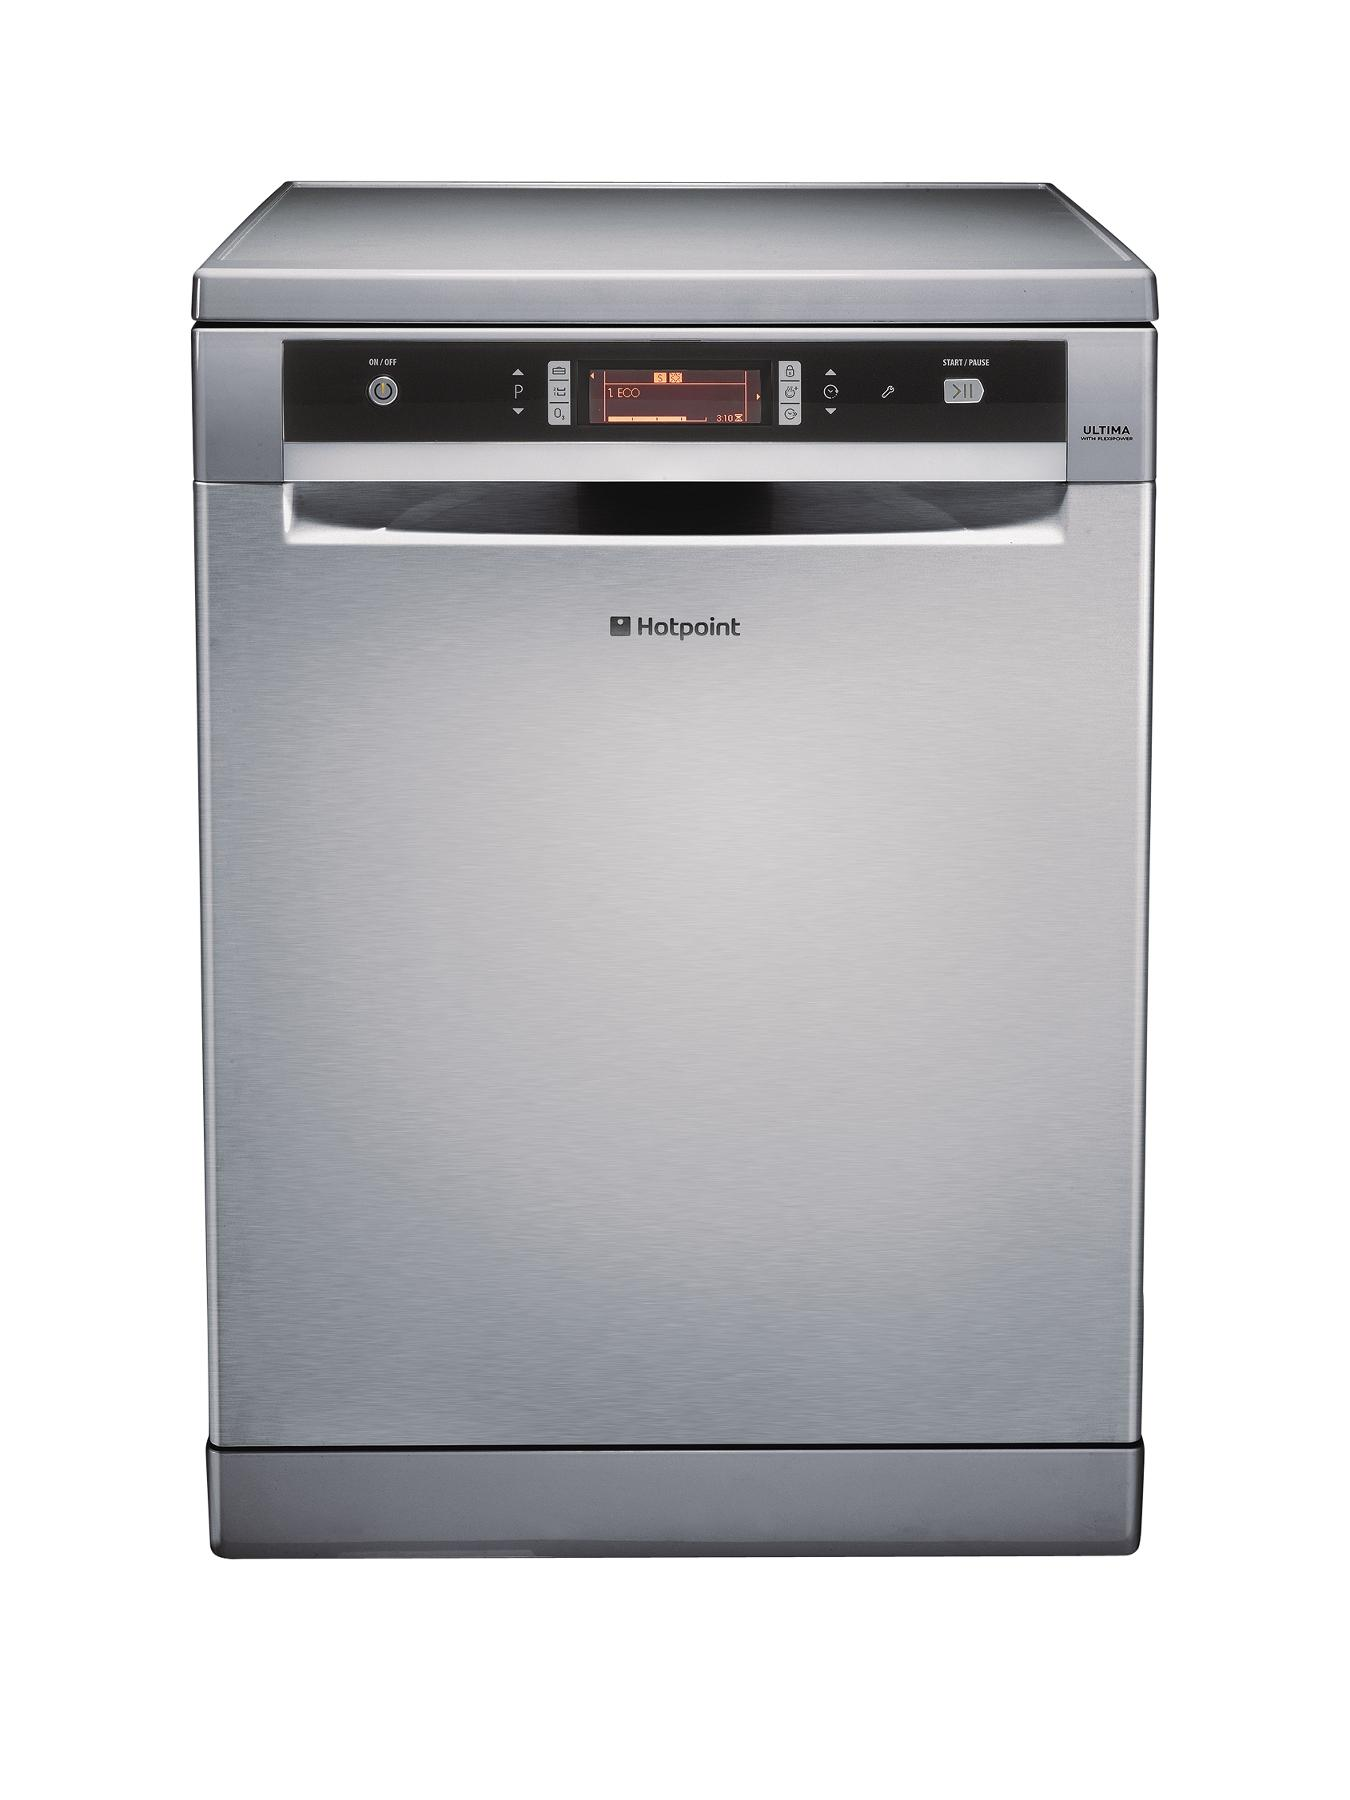 FDUD51110X Ultima Dishwasher - Stainless Steel